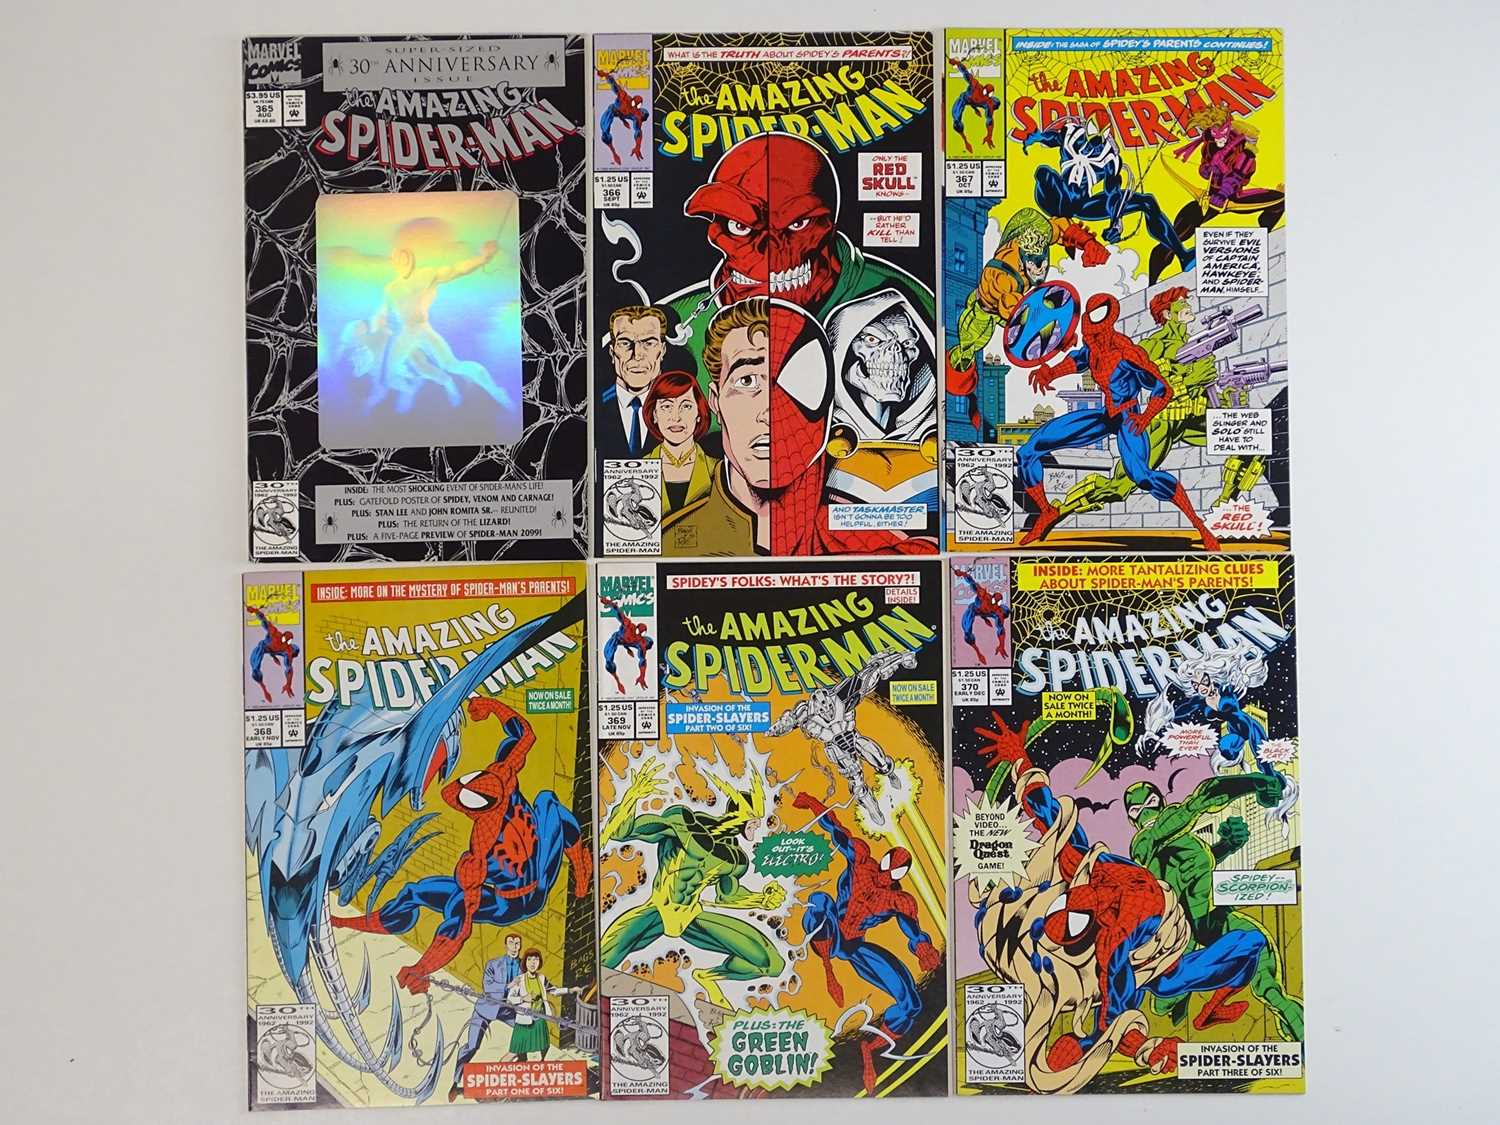 AMAZING SPIDER-MAN #365, 366, 367, 368, 369, 370 - (6 in Lot) - (1992 - MARVEL) - Includes First